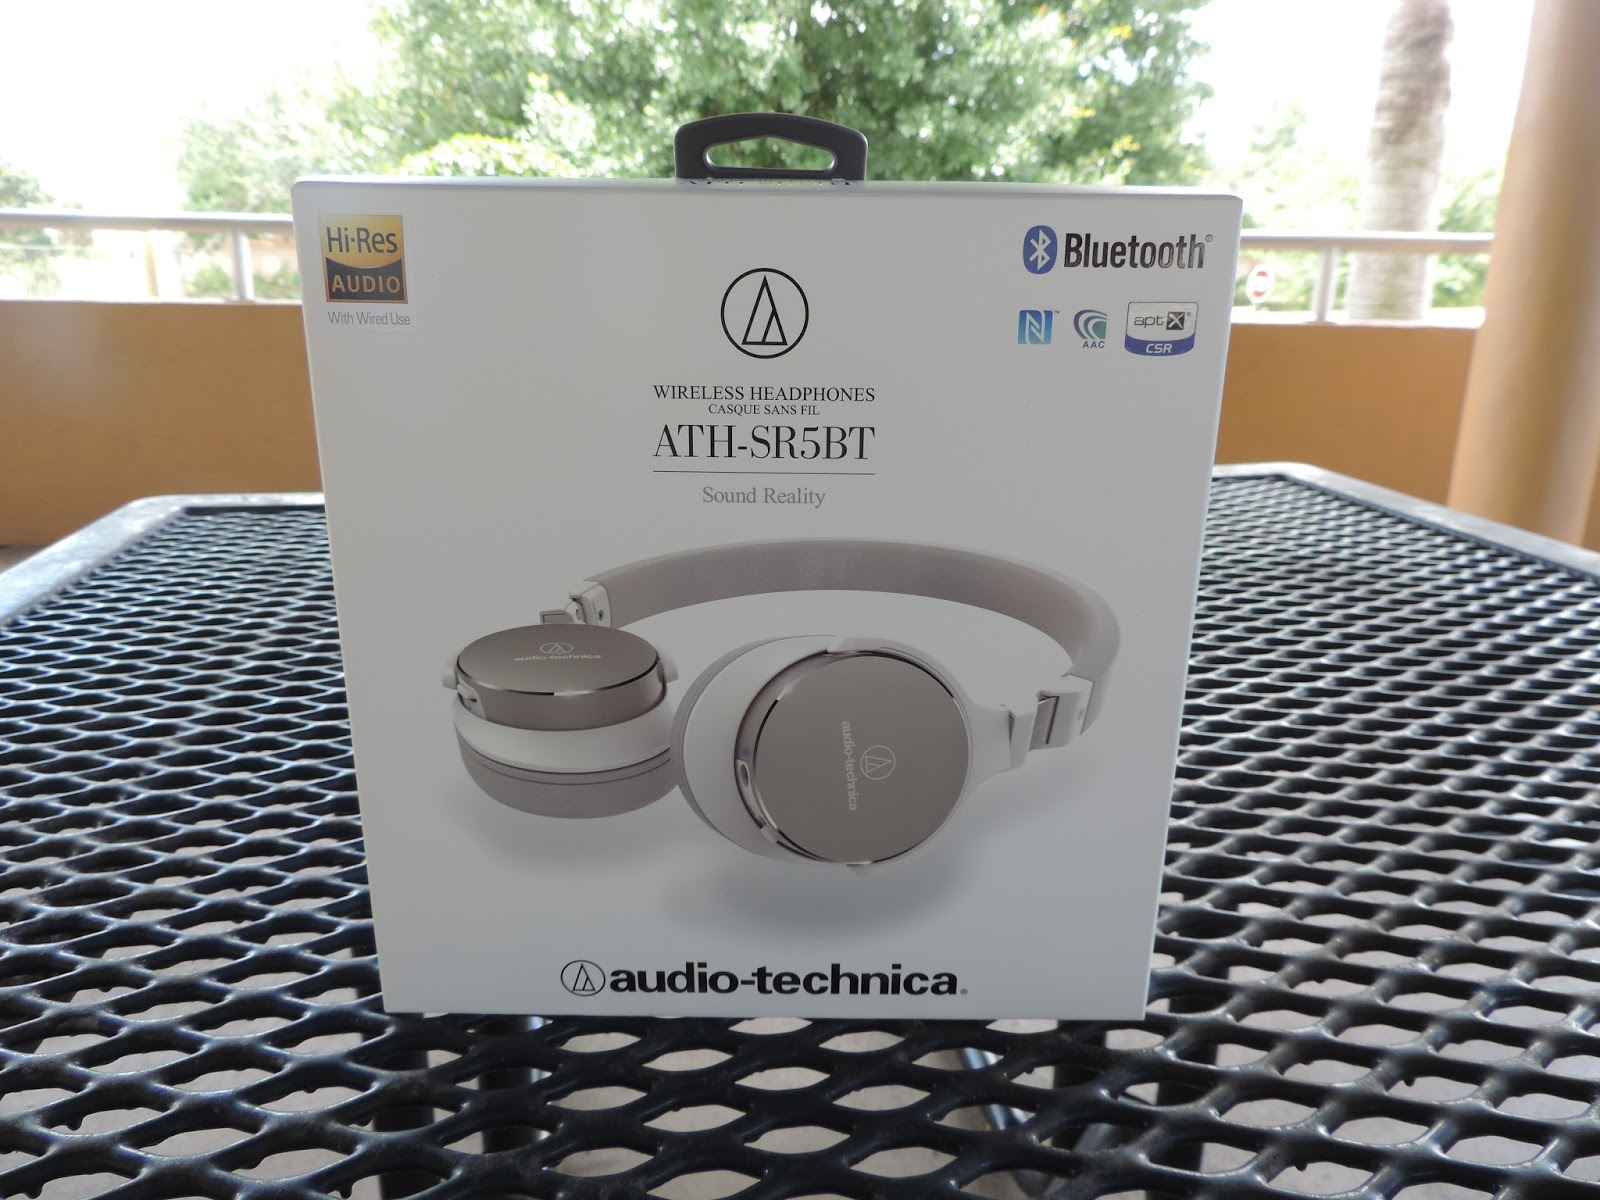 Mail4Rosey: Some Things Really are Worth the Price! Audio Technica ...